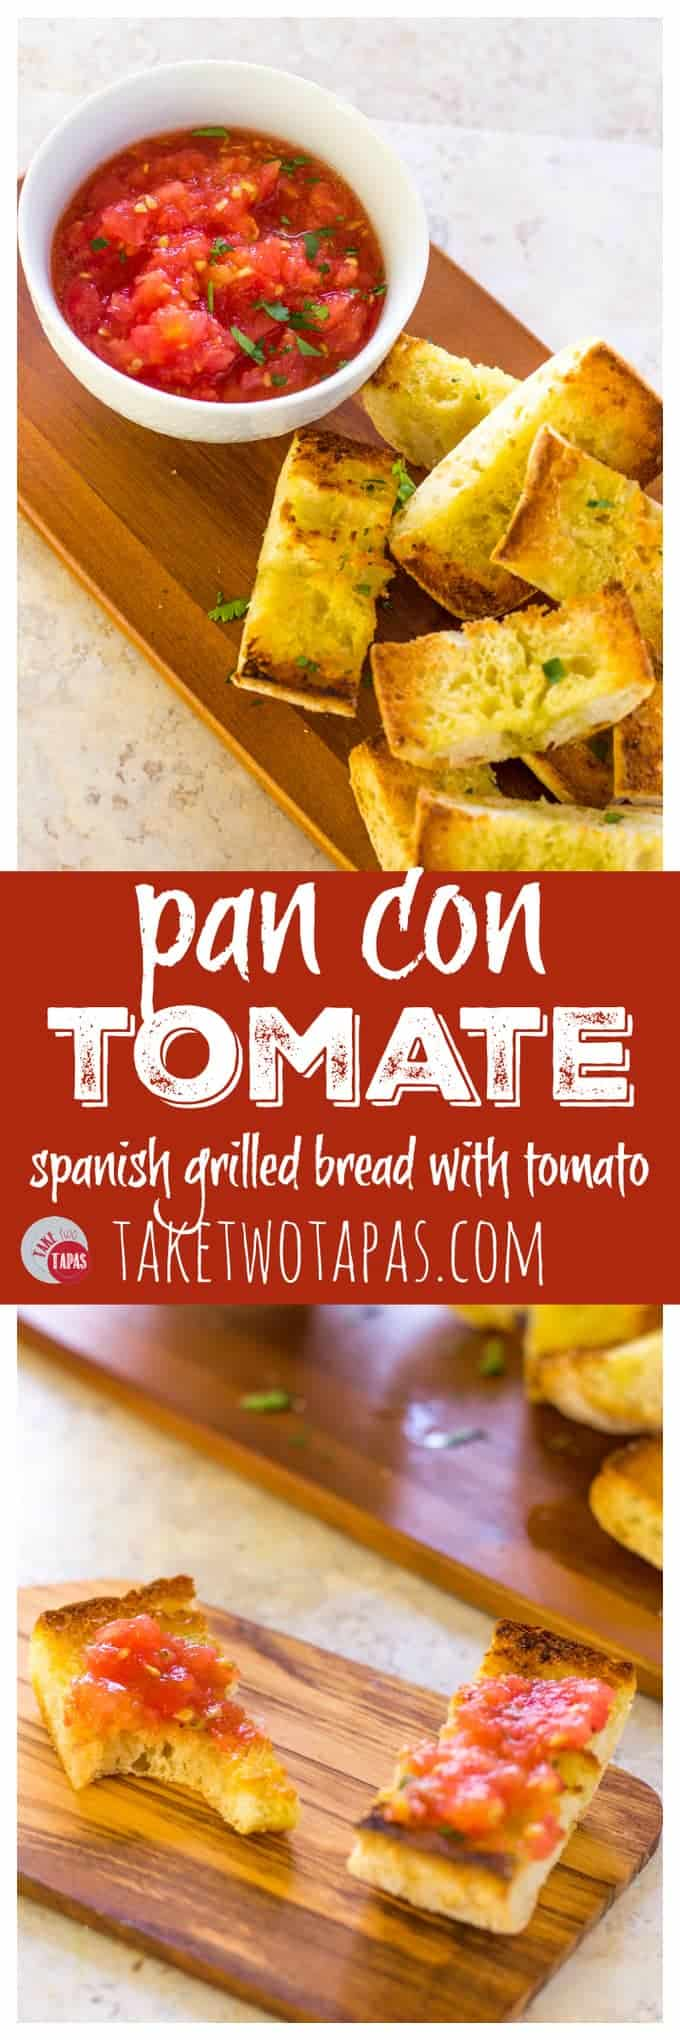 """Pinterest collage image with text """"pan con Tomate Spanish grilled bread with tomato"""""""